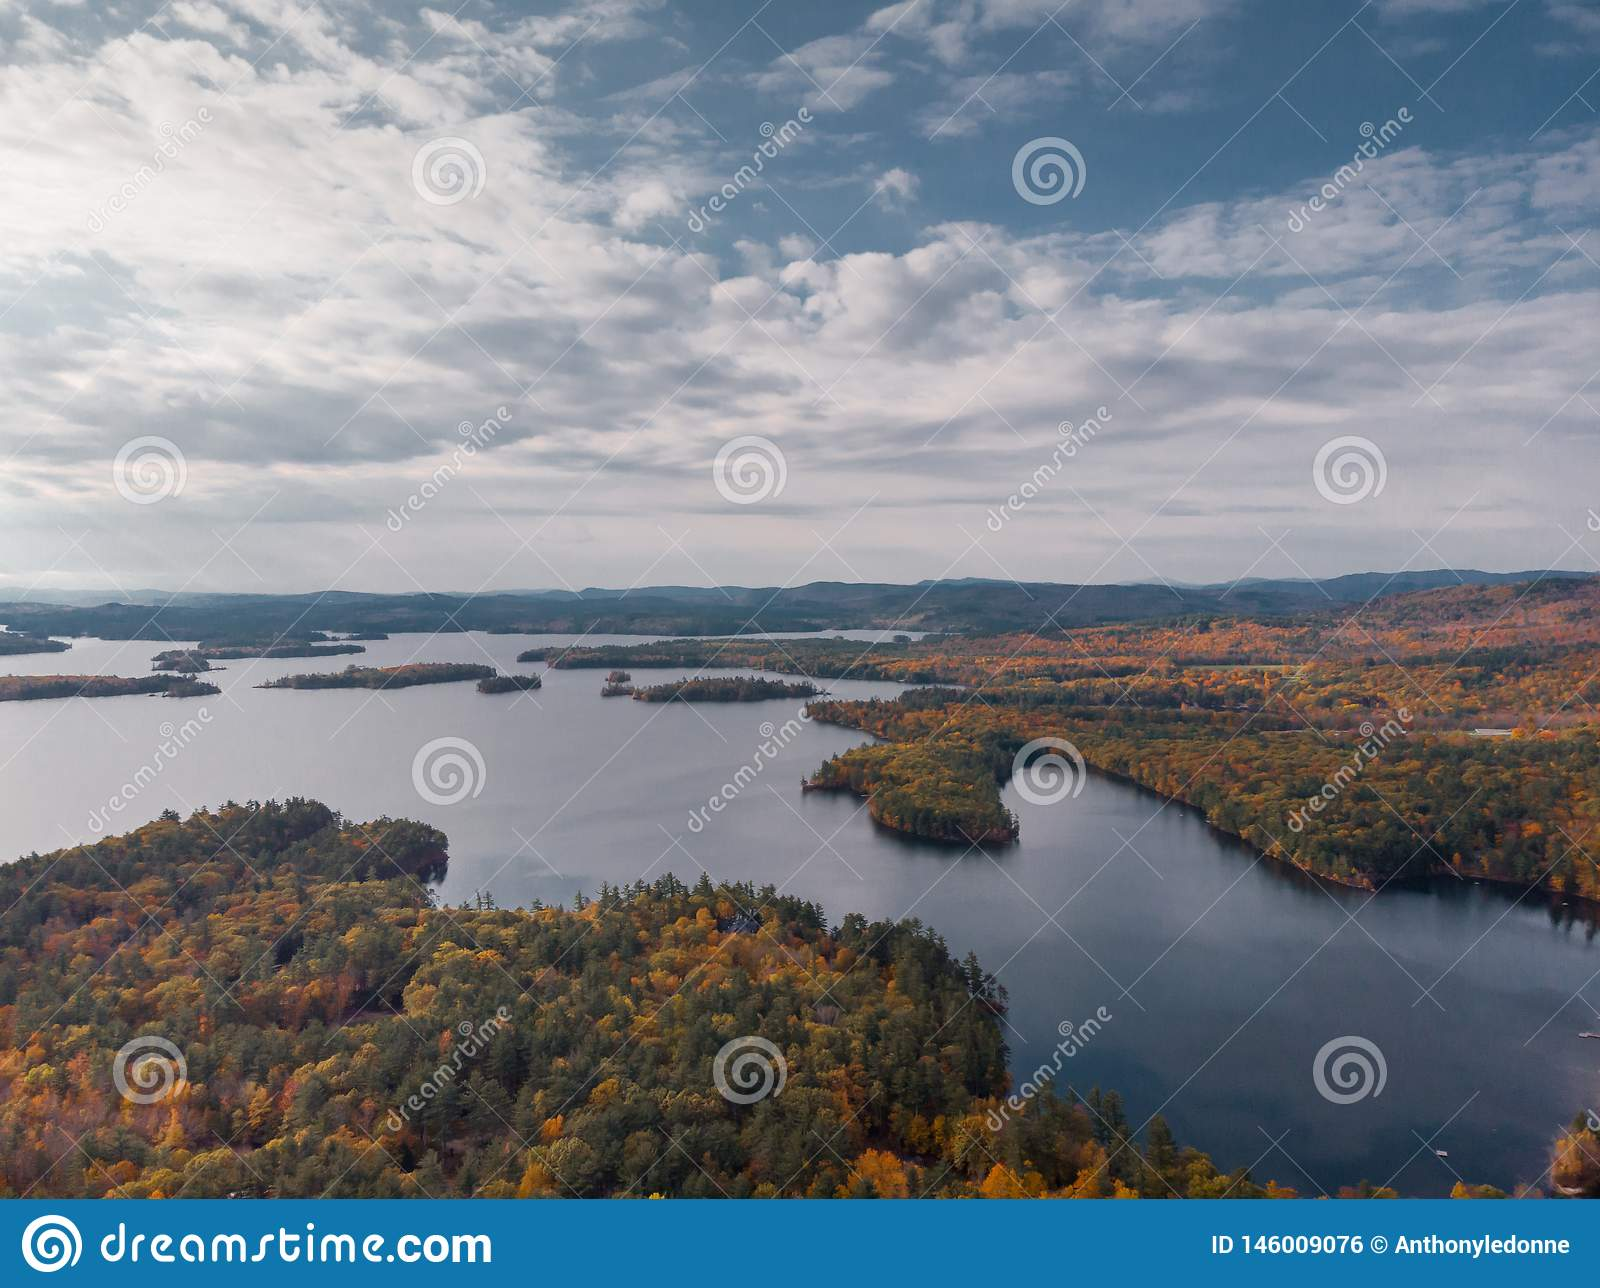 Autumn over a lake in New Hampshire